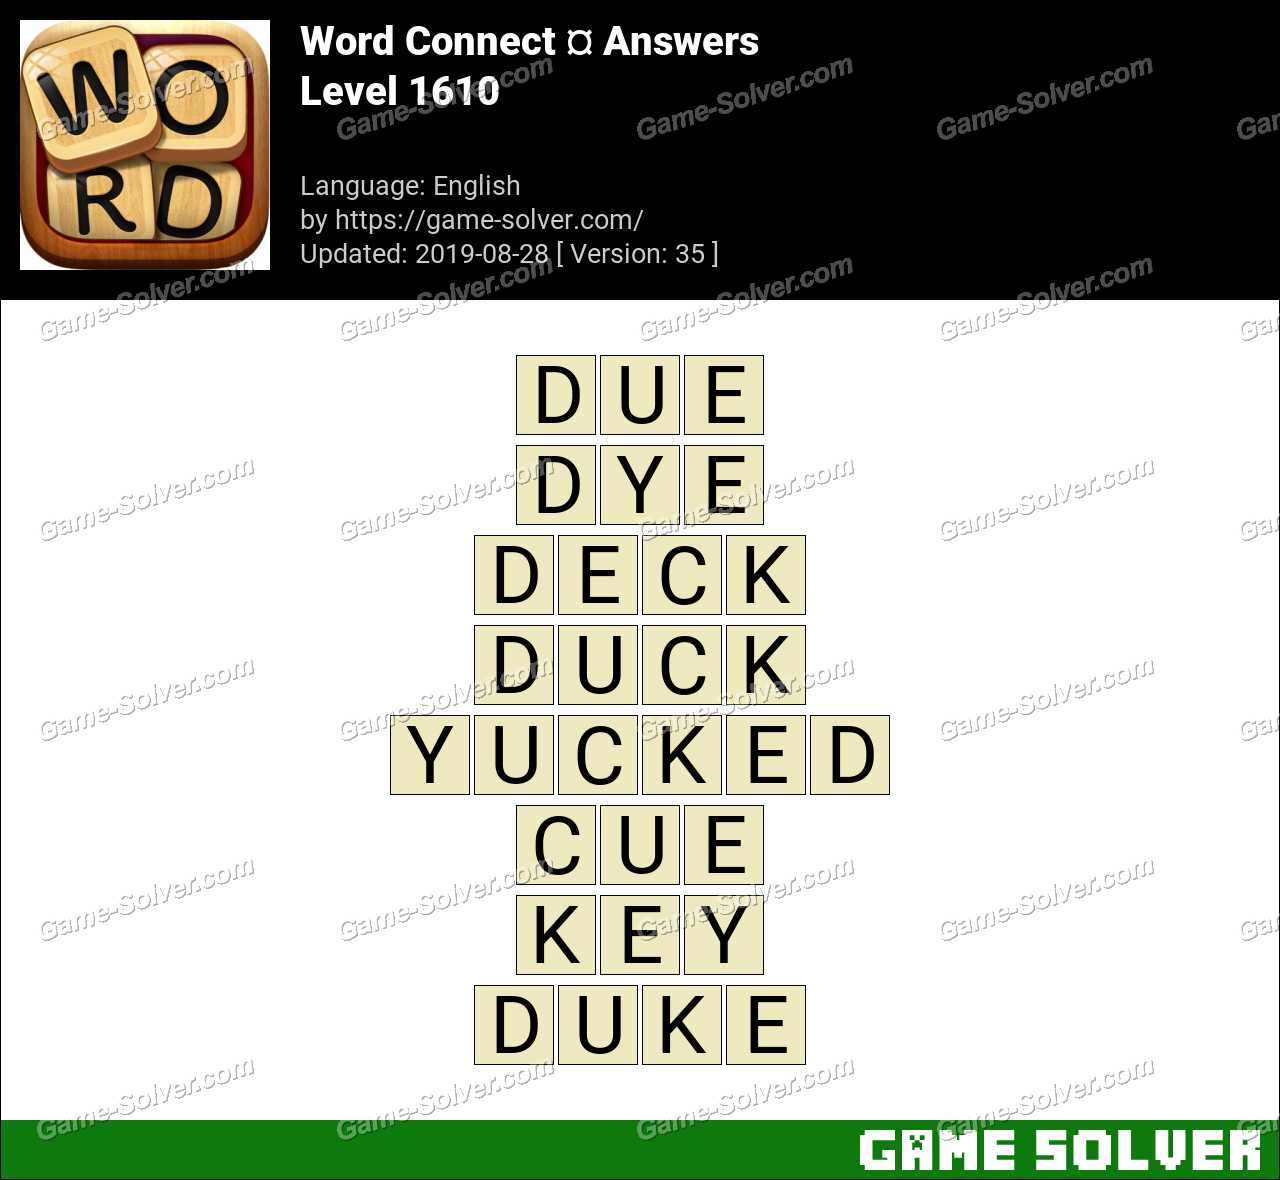 Word Connect Level 1610 Answers